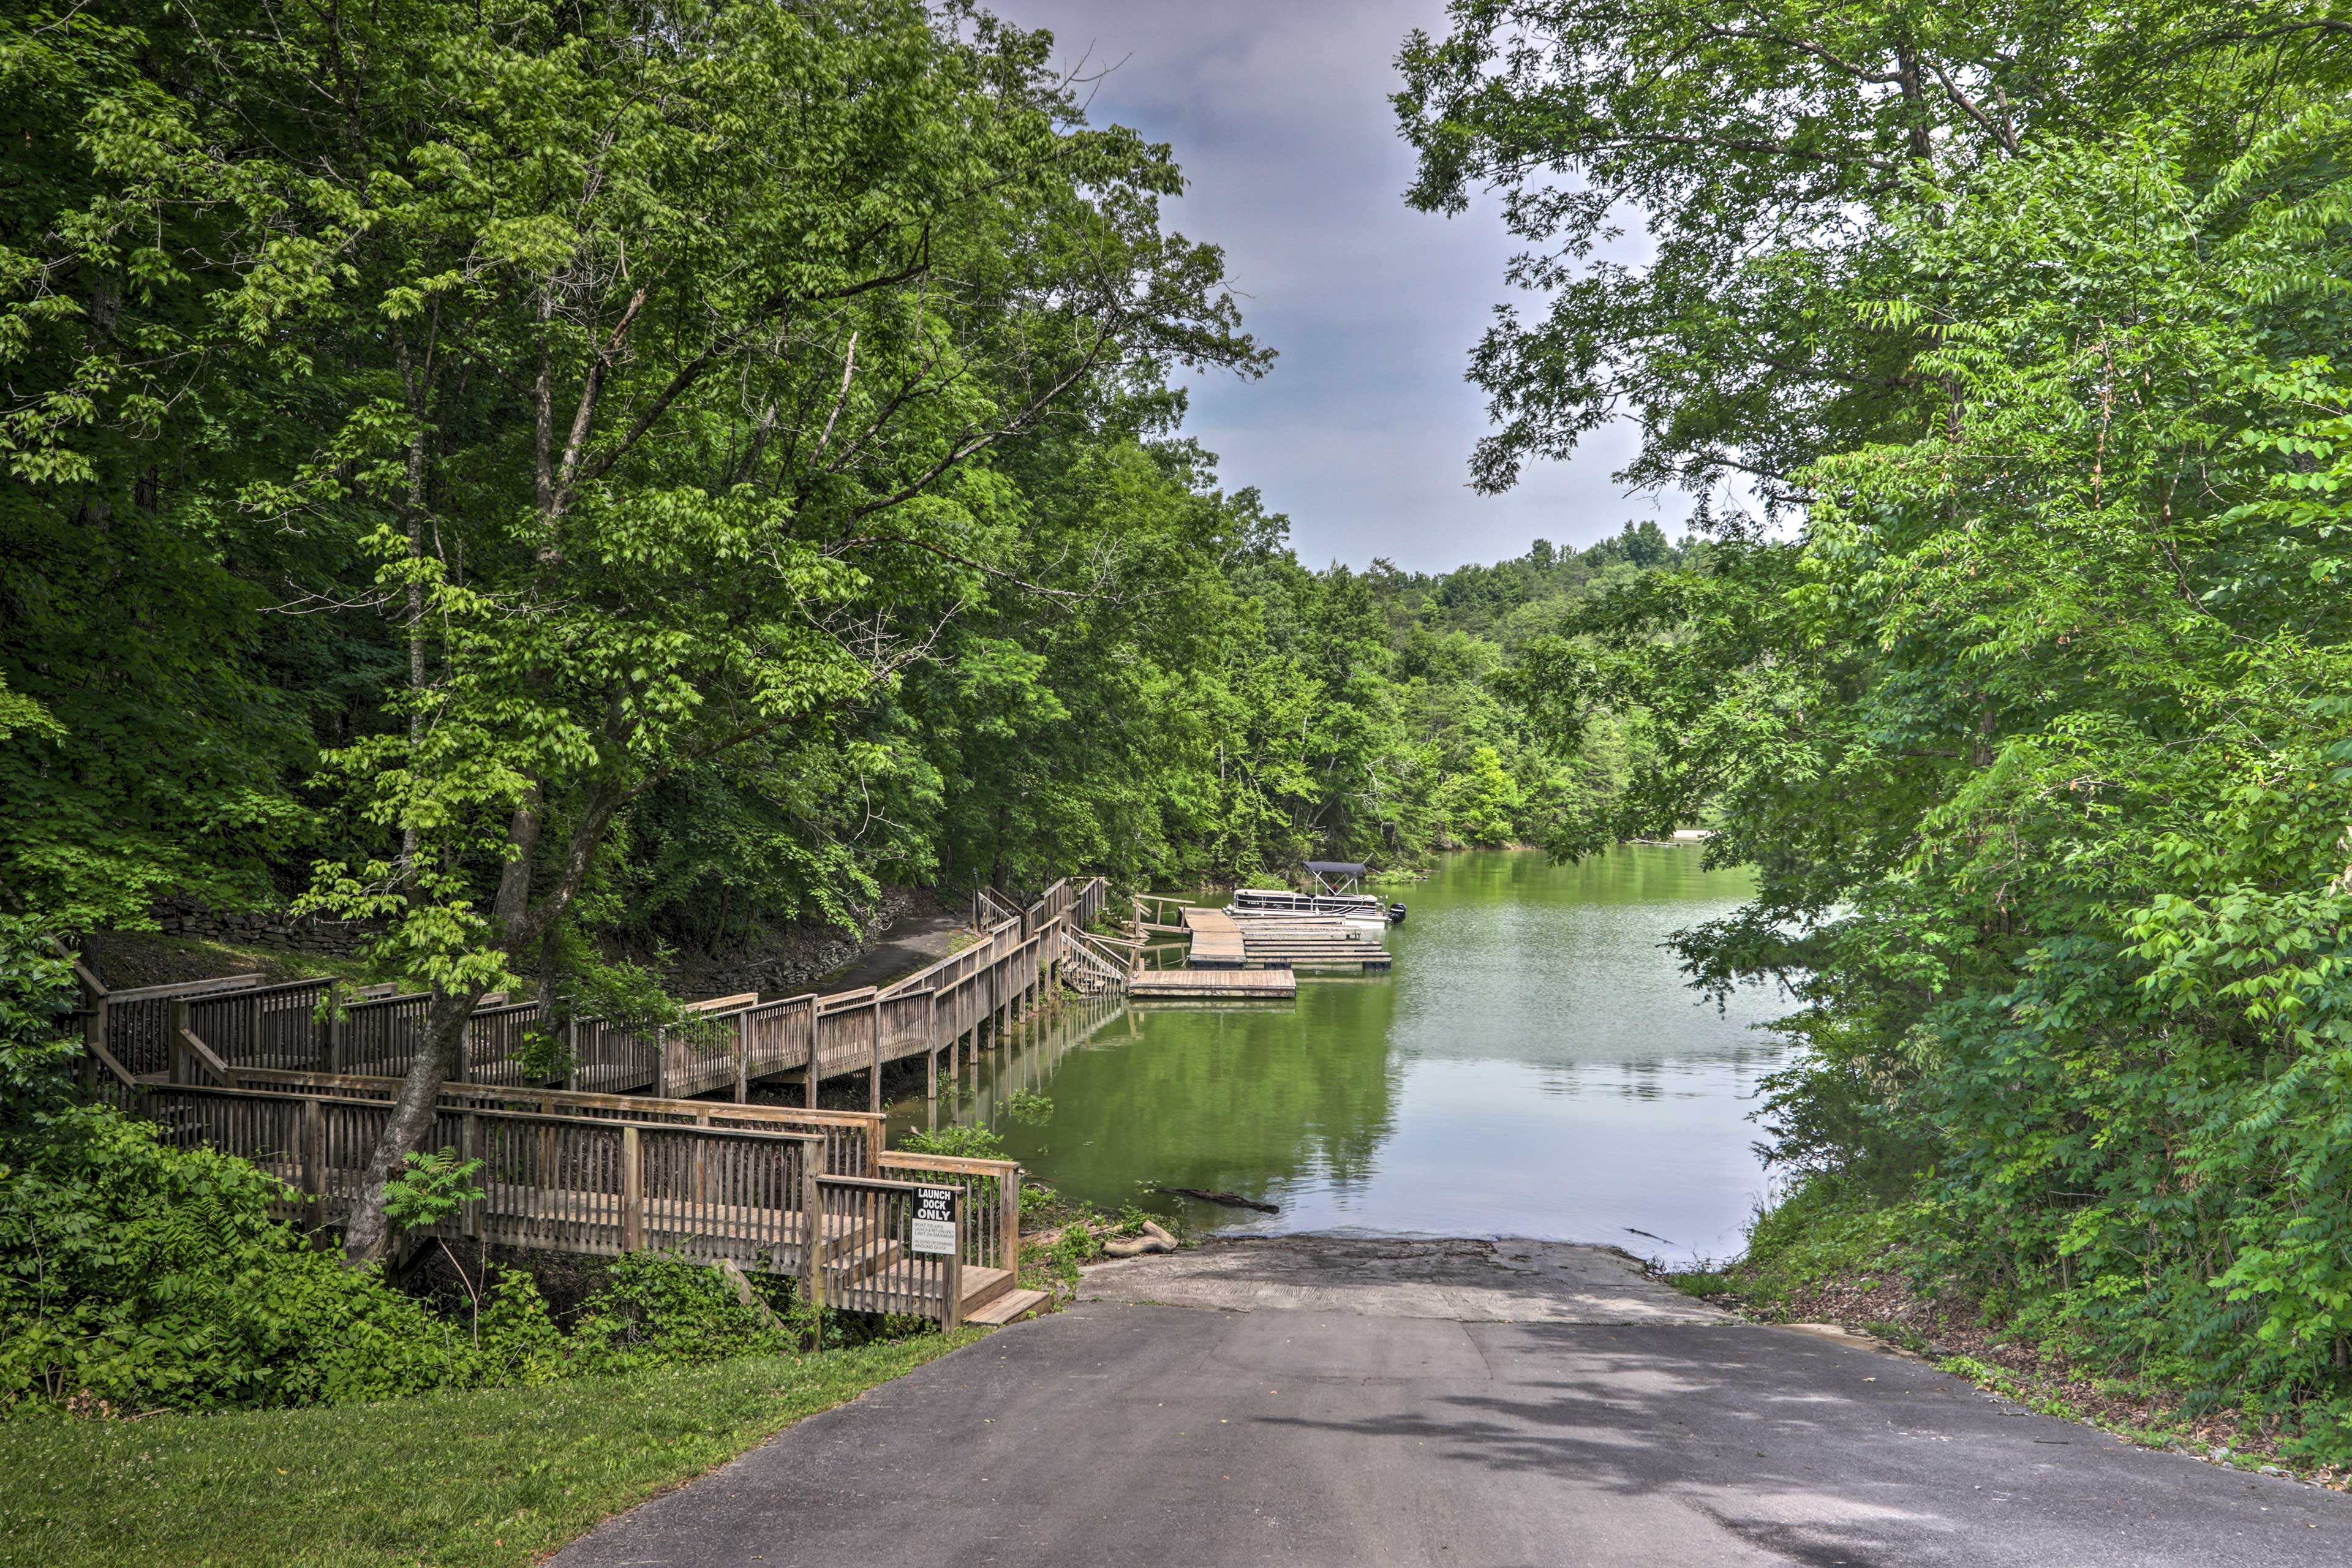 Bring your boat and access the boat slip!